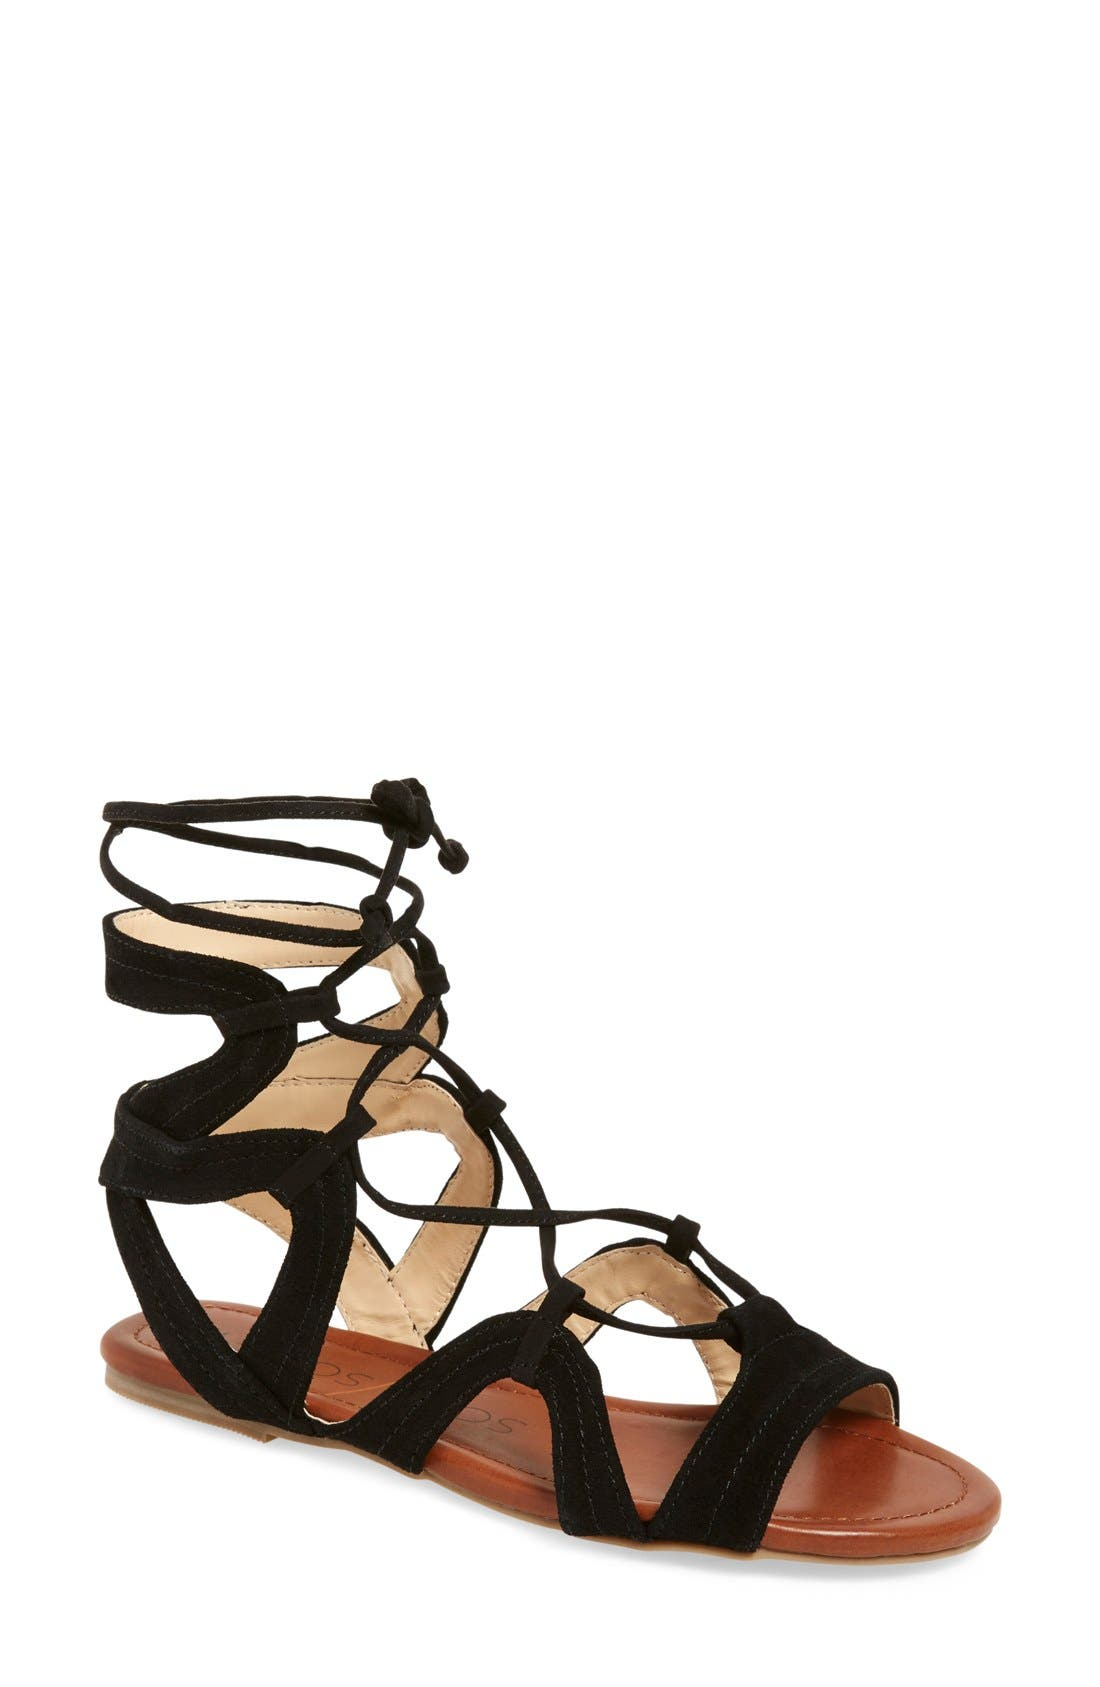 SOLE SOCIETY, 'Beirut' Lace-Up Sandal, Main thumbnail 1, color, 003